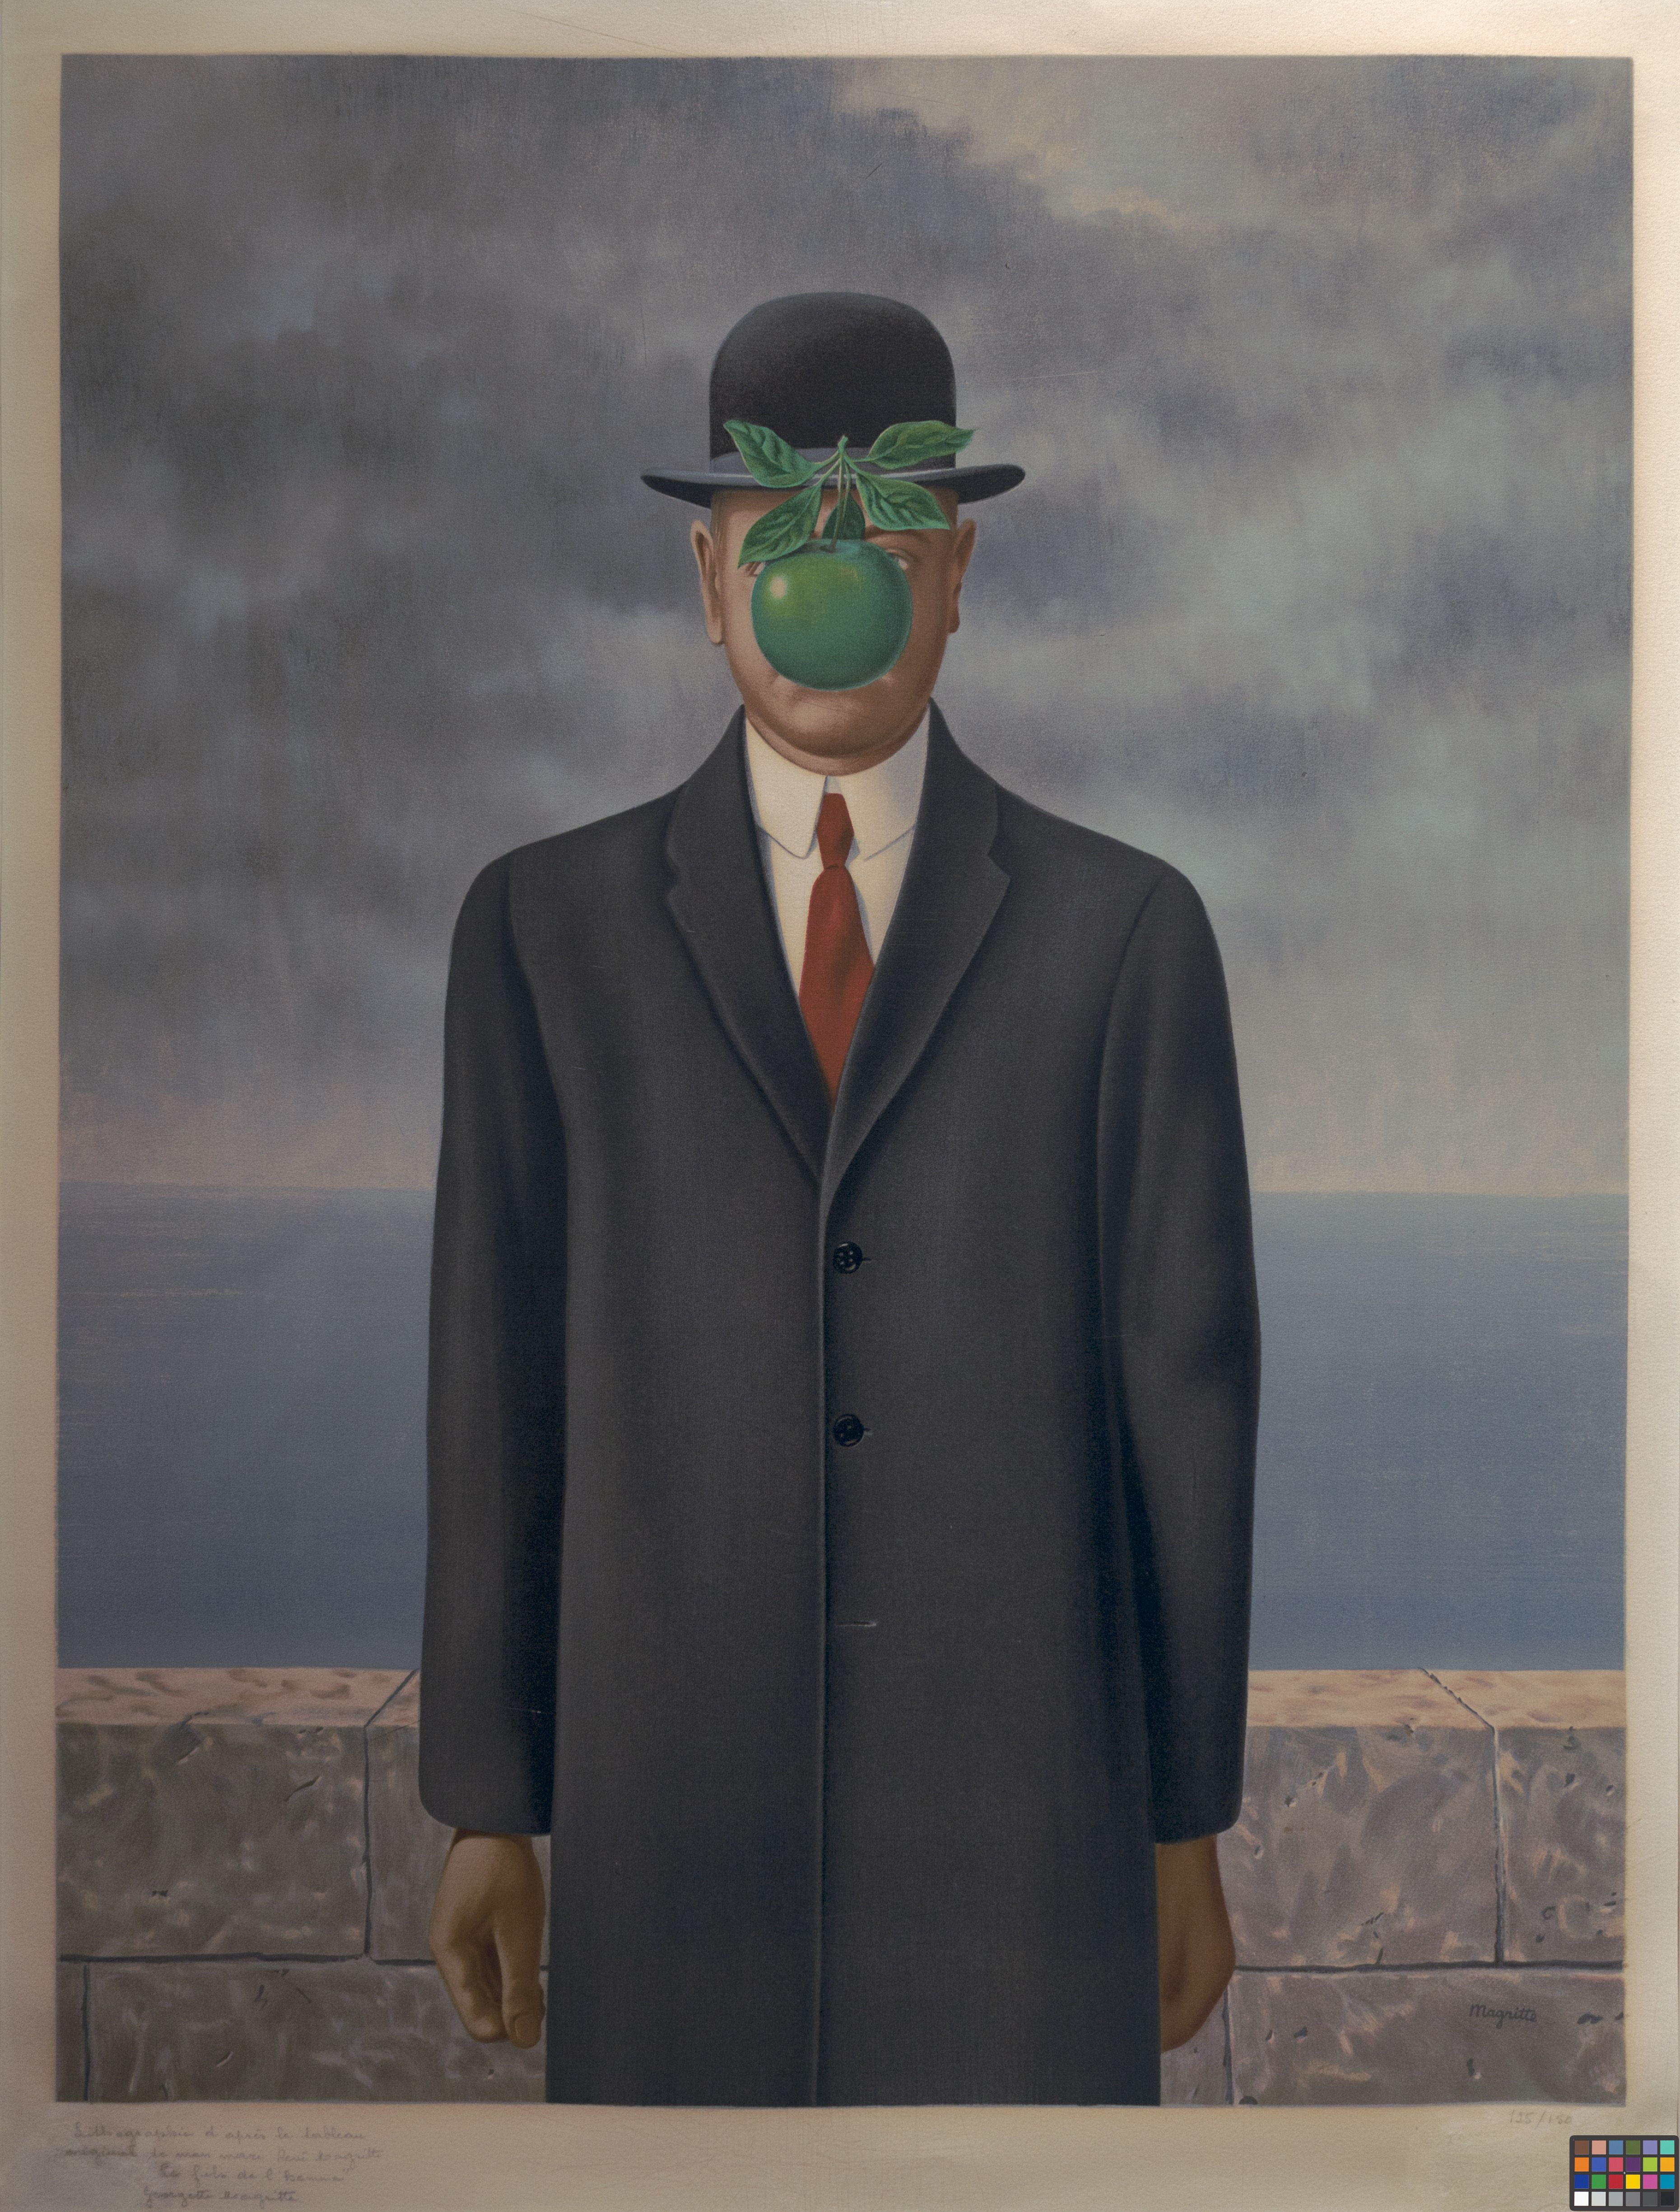 The Son of Man, René Magritte, 1964. Oil on canvas. | Art ...